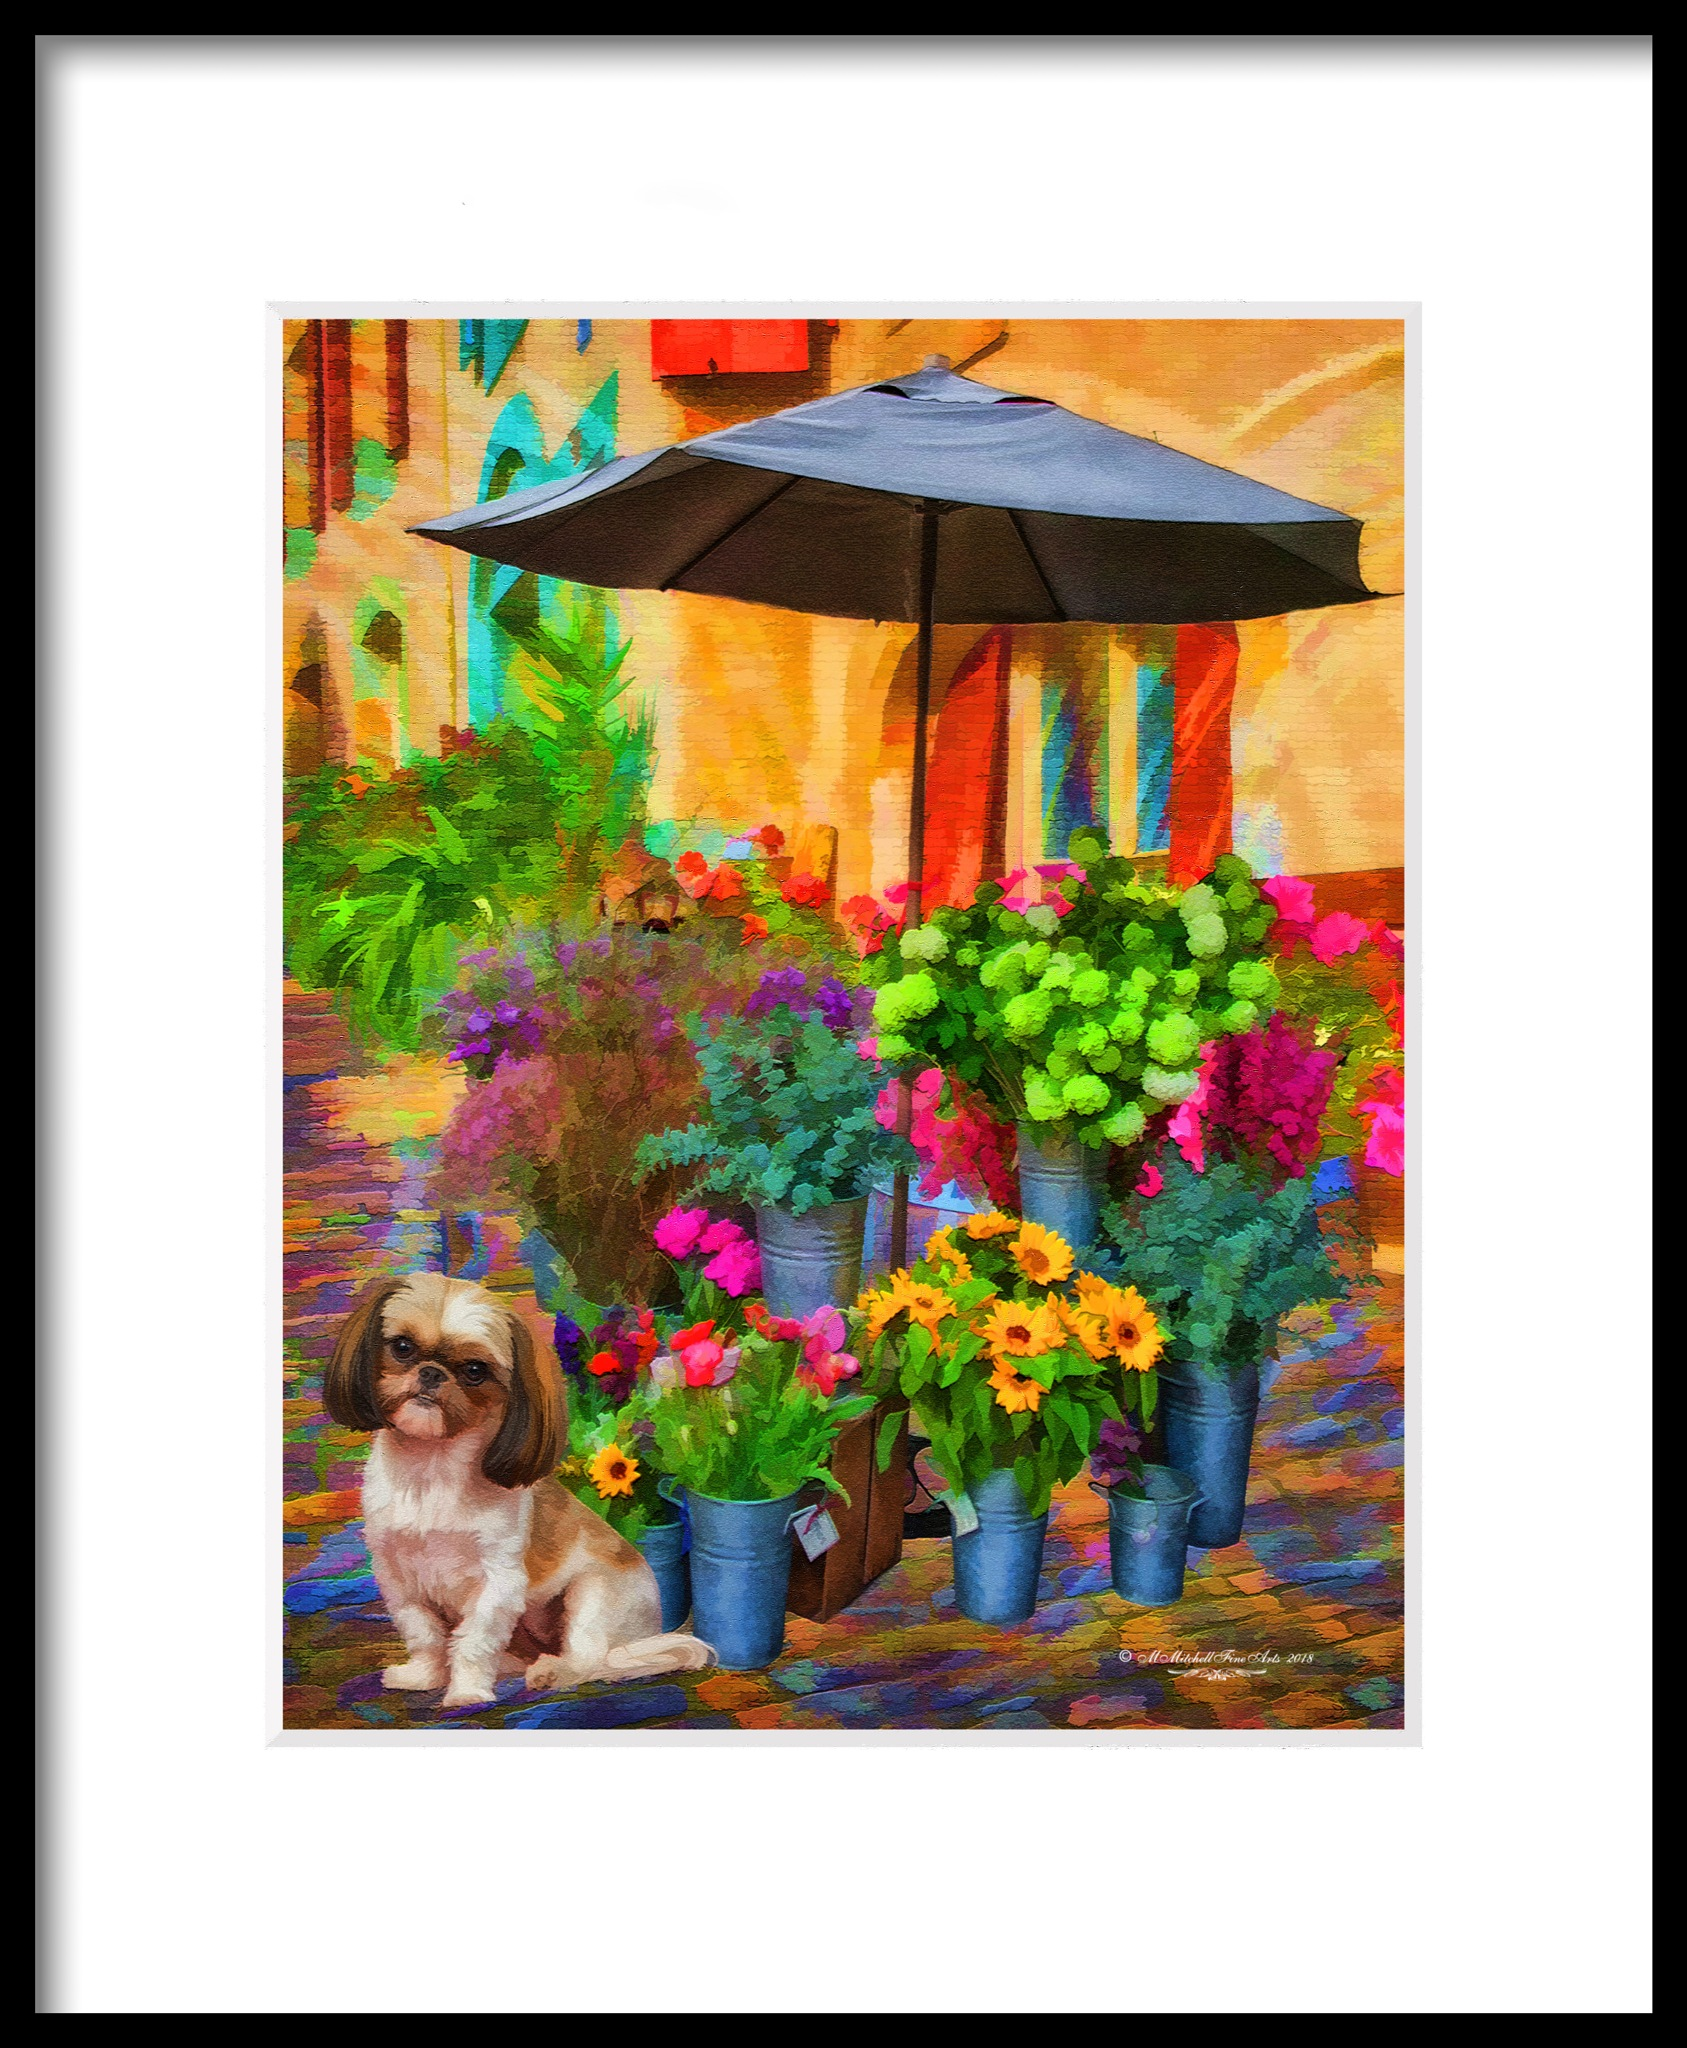 Flower Stand - Framed by Mary Mitchell